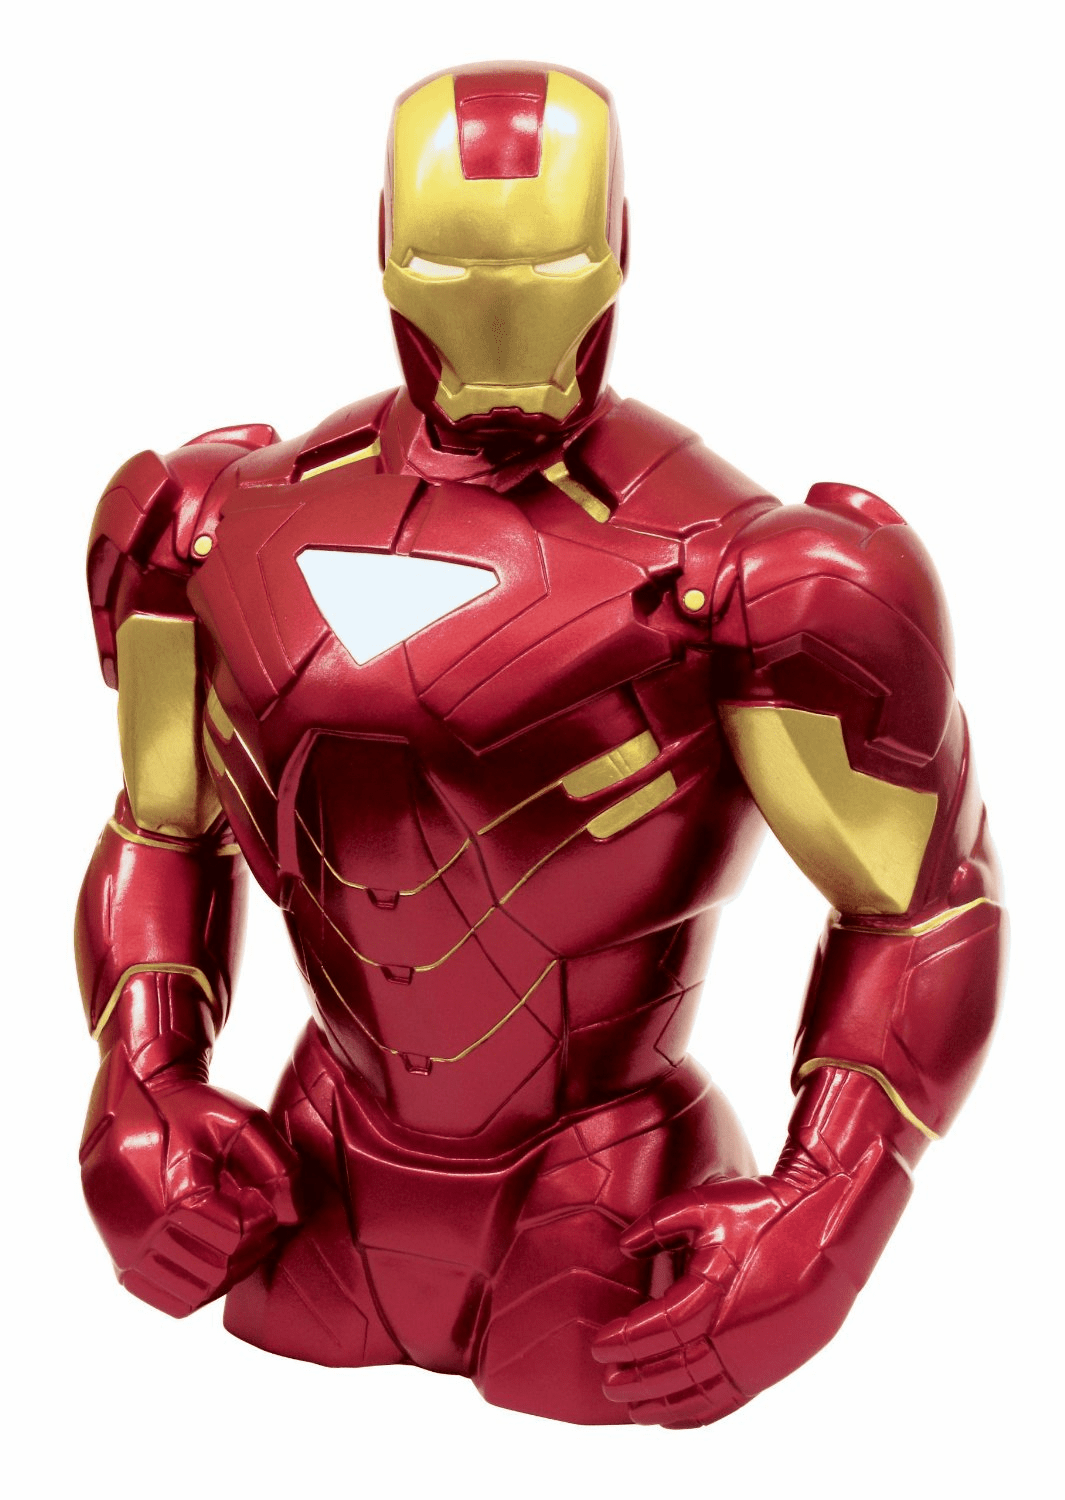 Marvel Comics Iron Man Movie 2 Bust Coin Bank